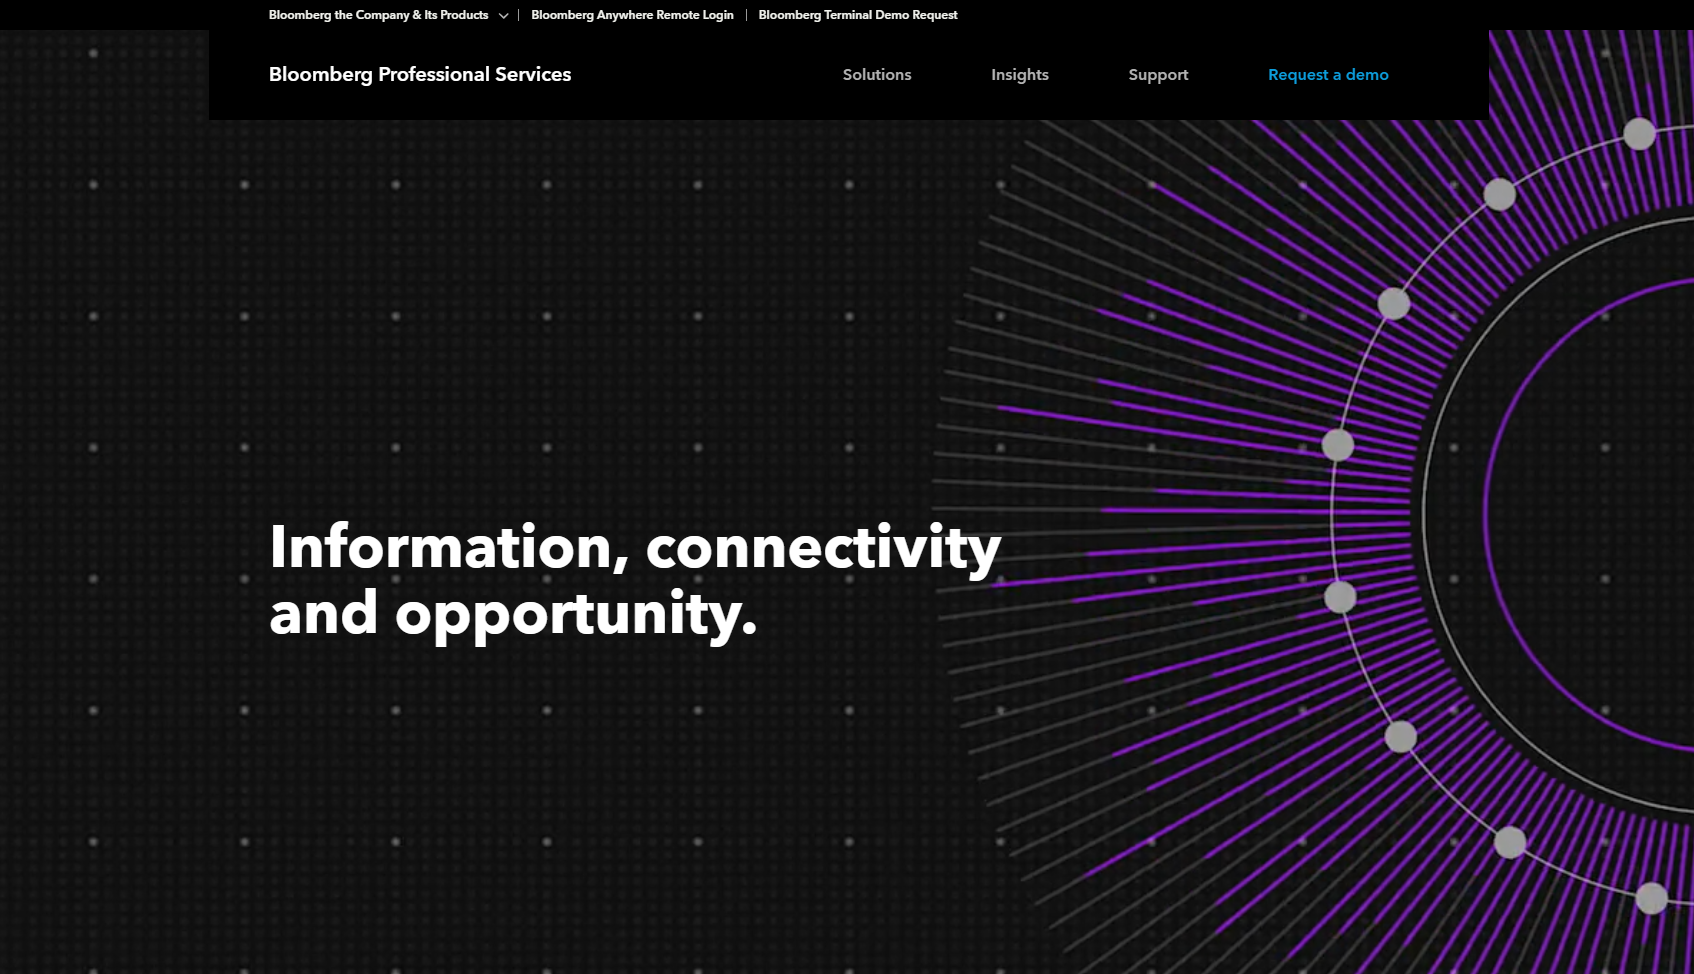 Bloomberg Anywhere | Bloomberg Professional Services